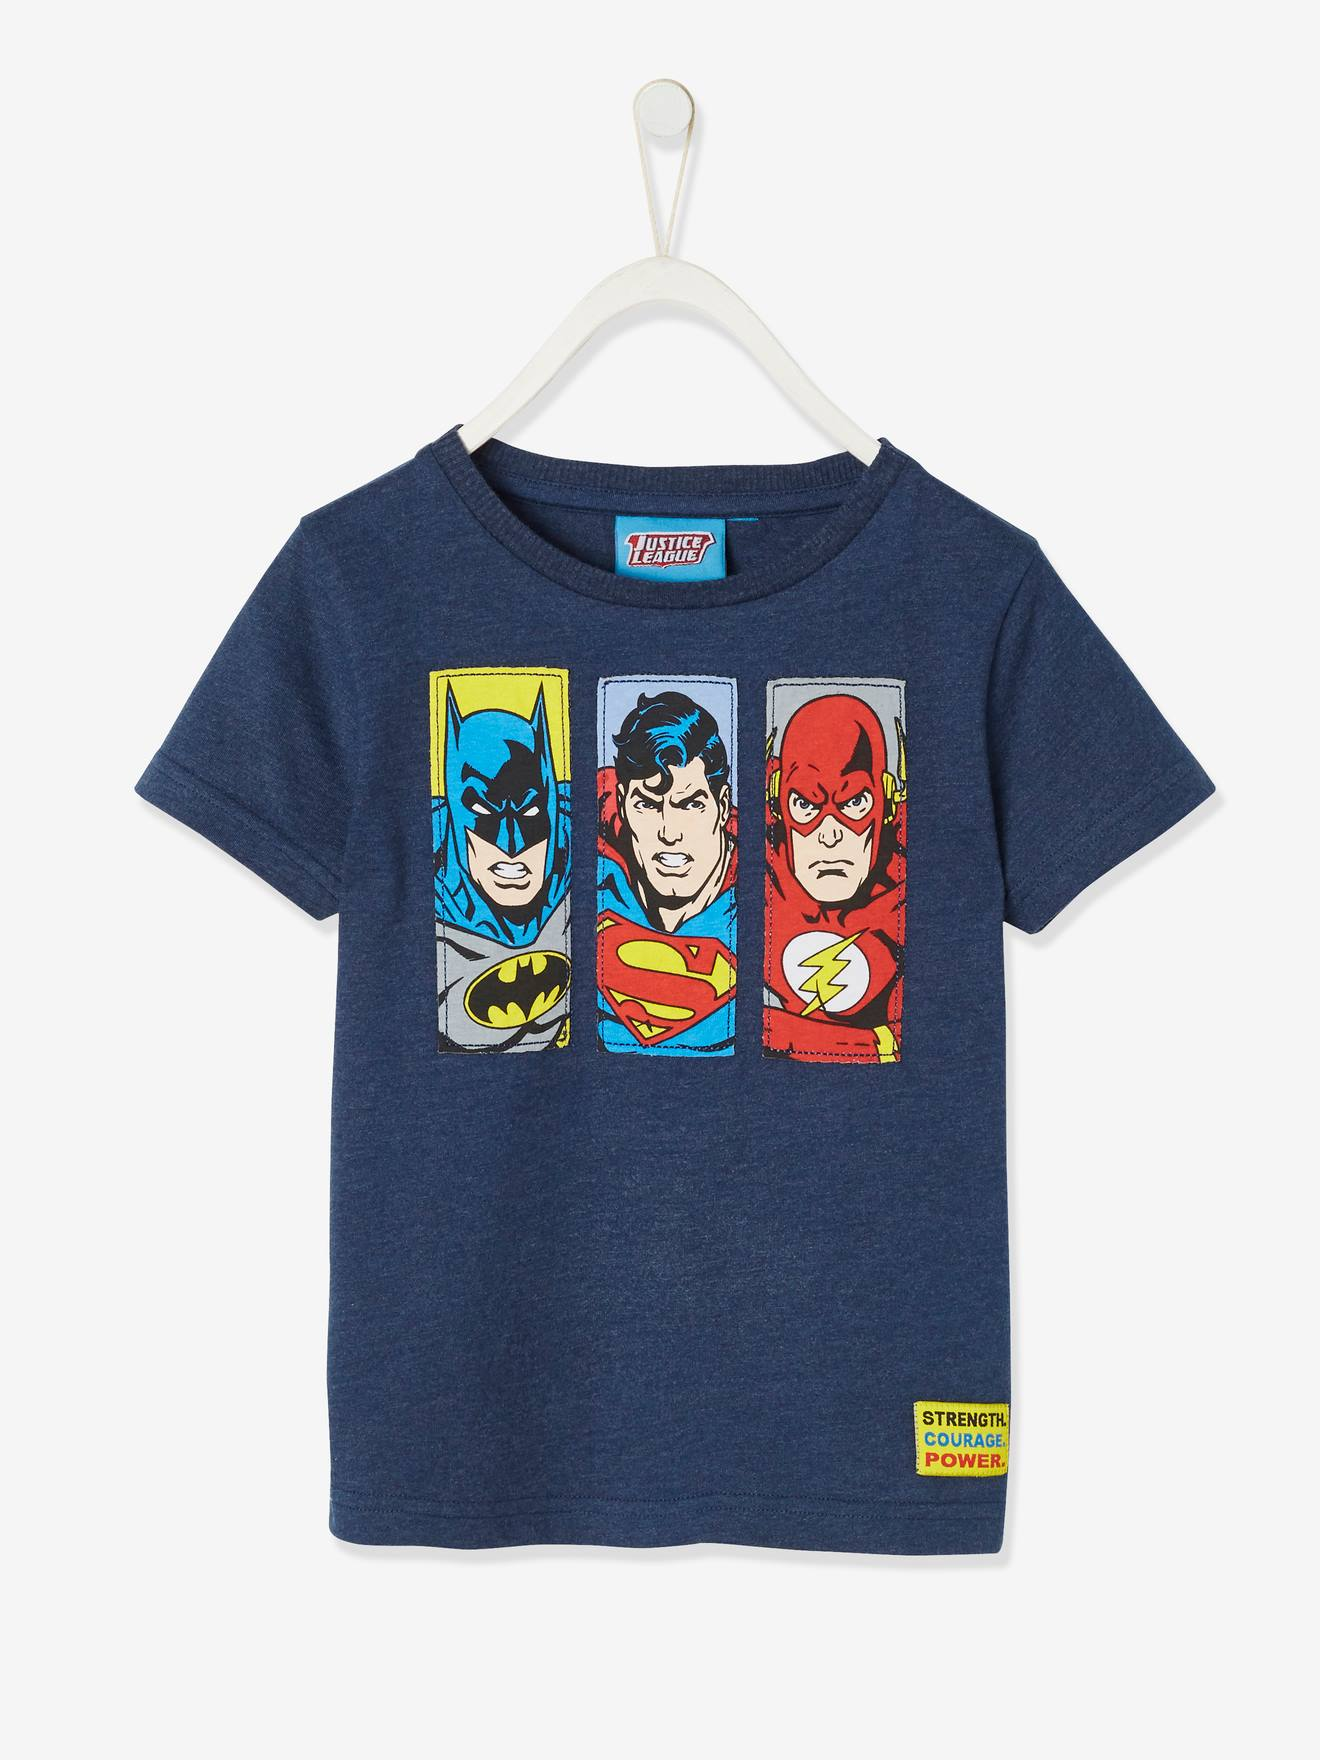 superman nursery decor.htm justice league   t shirt for boys blue medium mixed color  boys  blue medium mixed color